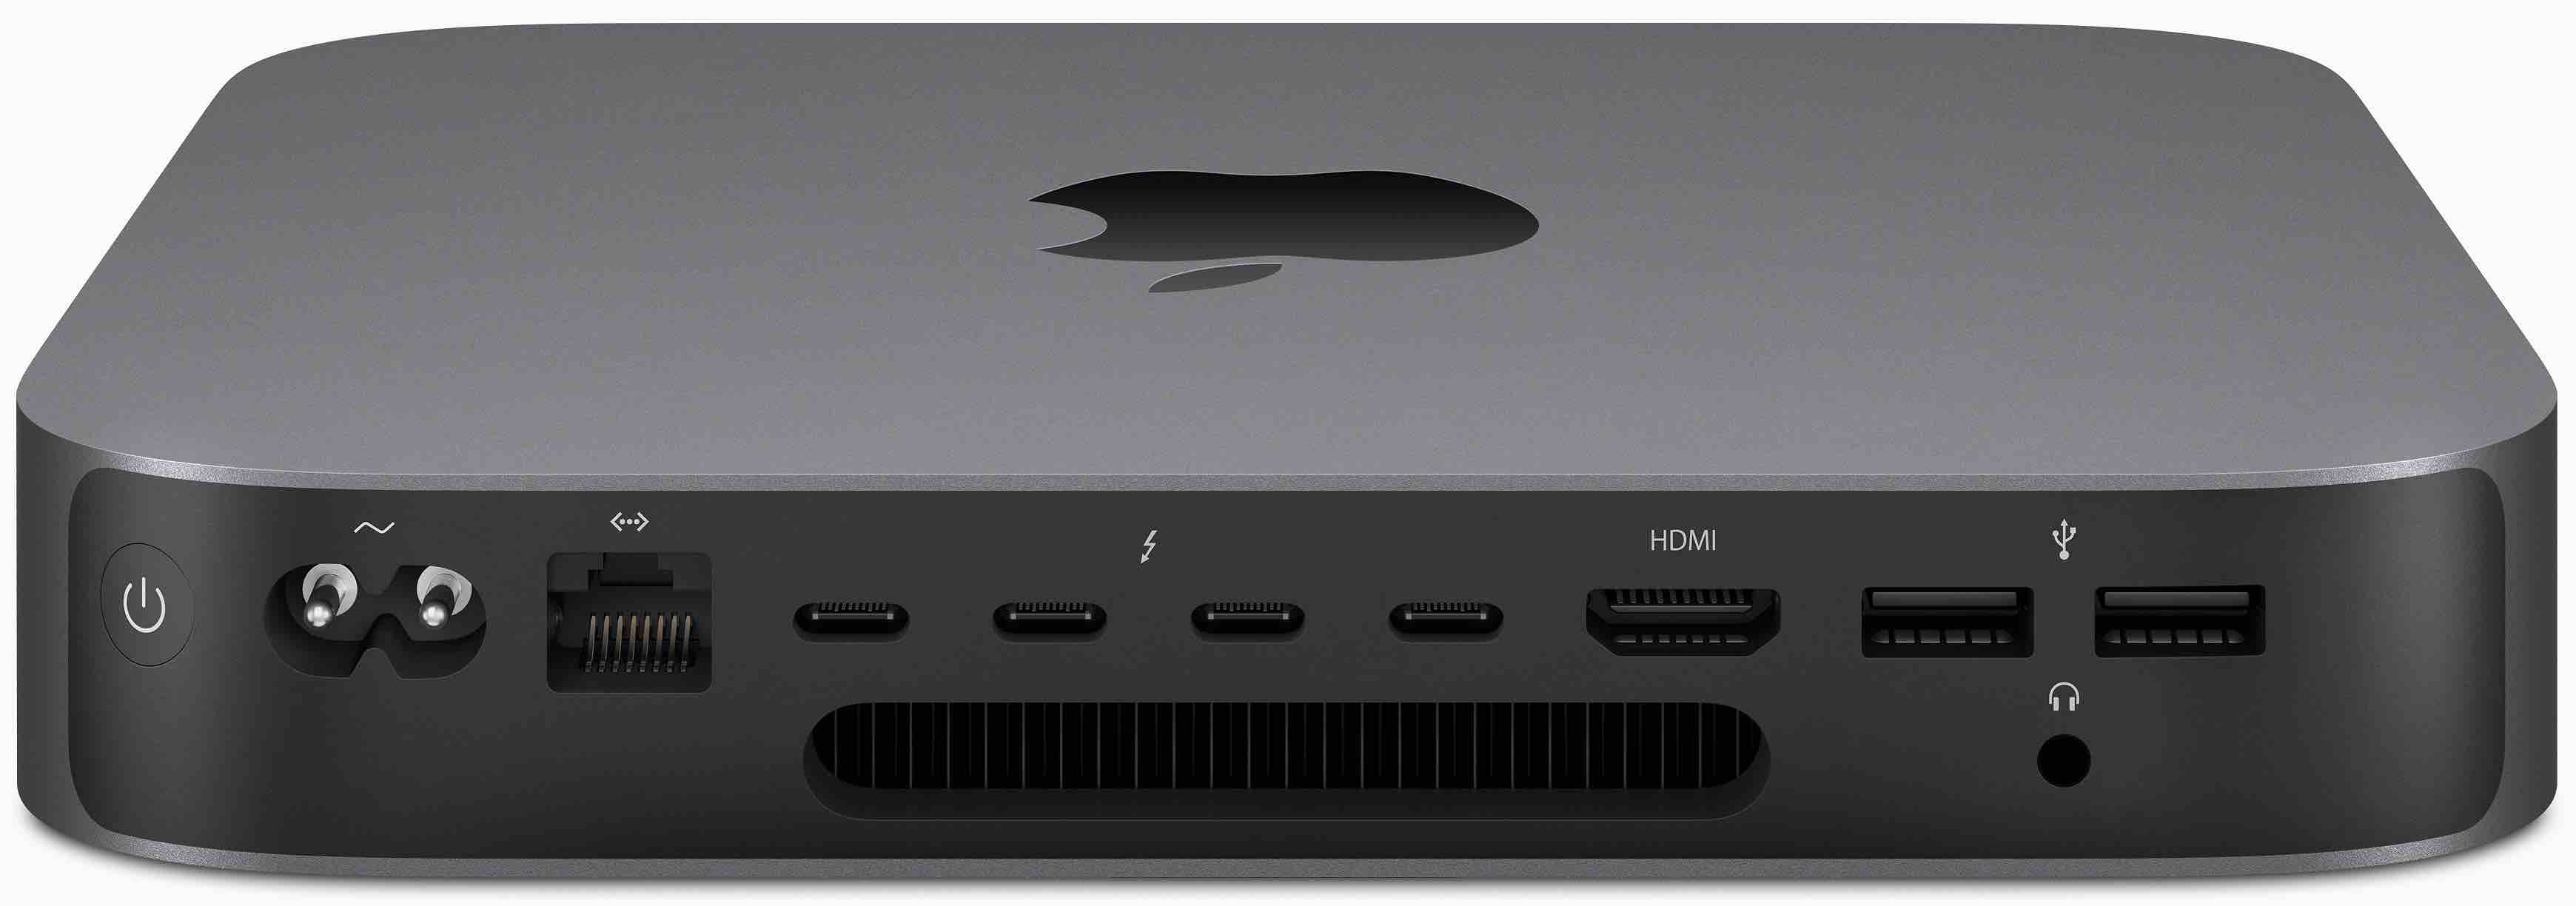 Mac mini 2018 back